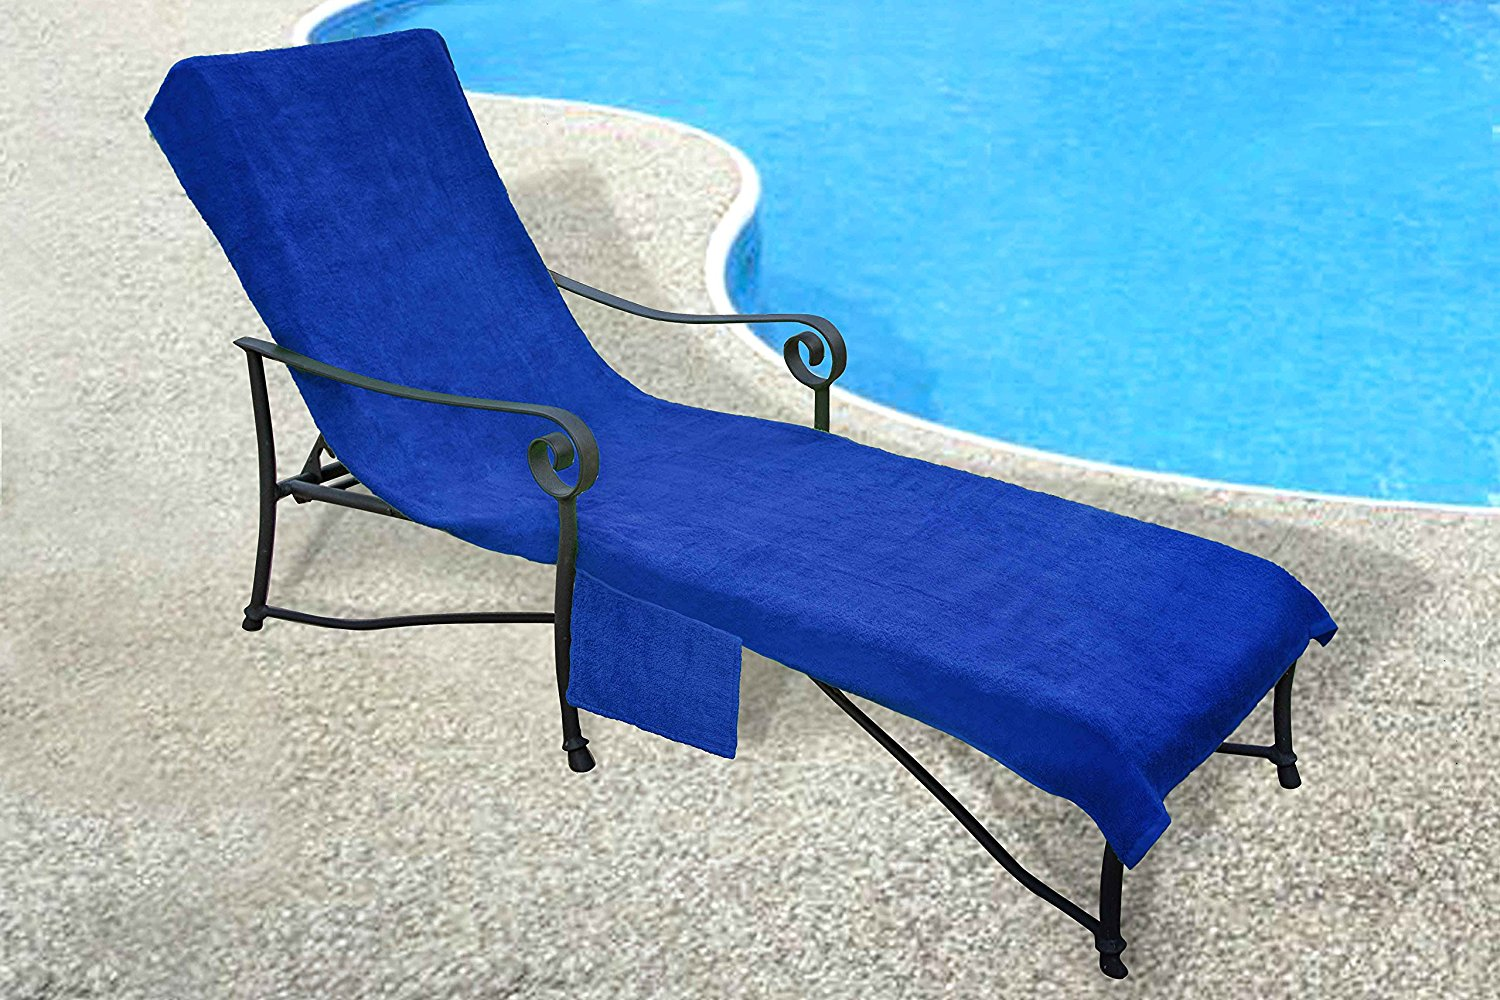 - Pool Side Chaise Lounge Cover - Walmart.com - Walmart.com